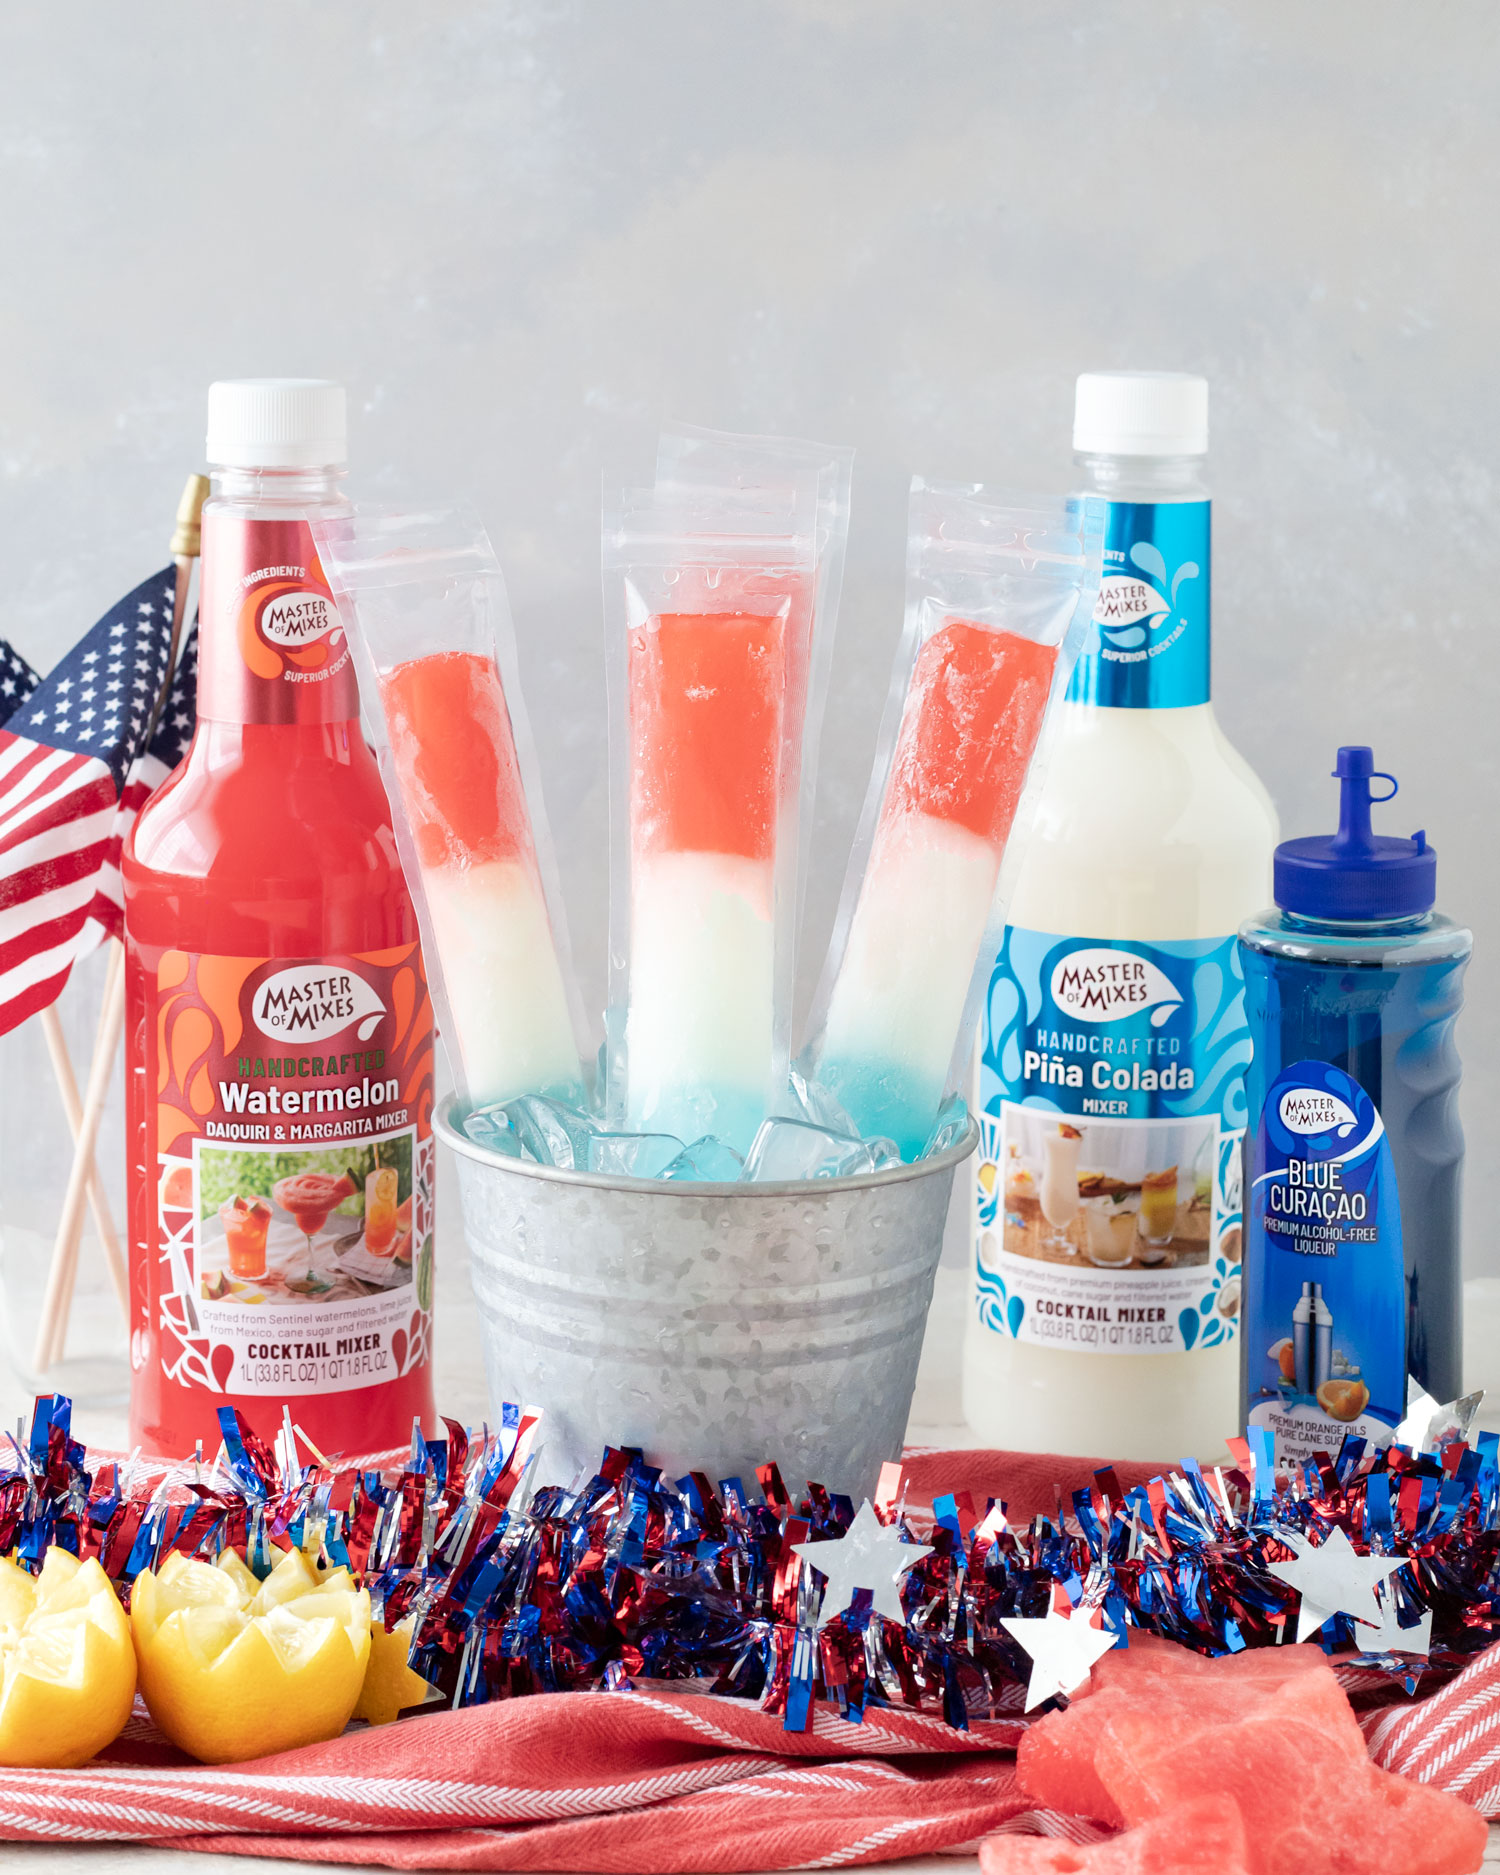 Red, White, and Blue themed boozy rum popsicles for summer using Master of Mixes to create a layered treat for Memorial Day, Fourth of July boozy popsicle treat, or Labor Day treat idea. #sponsored #CocktailRecipes #ElleTalk #MasterofMixes #BoozyPopsicles #Popsicles #IcePops #MemorialDayParty #FourthofJulyParty #LaborDayParty #RedWhiteandBlue